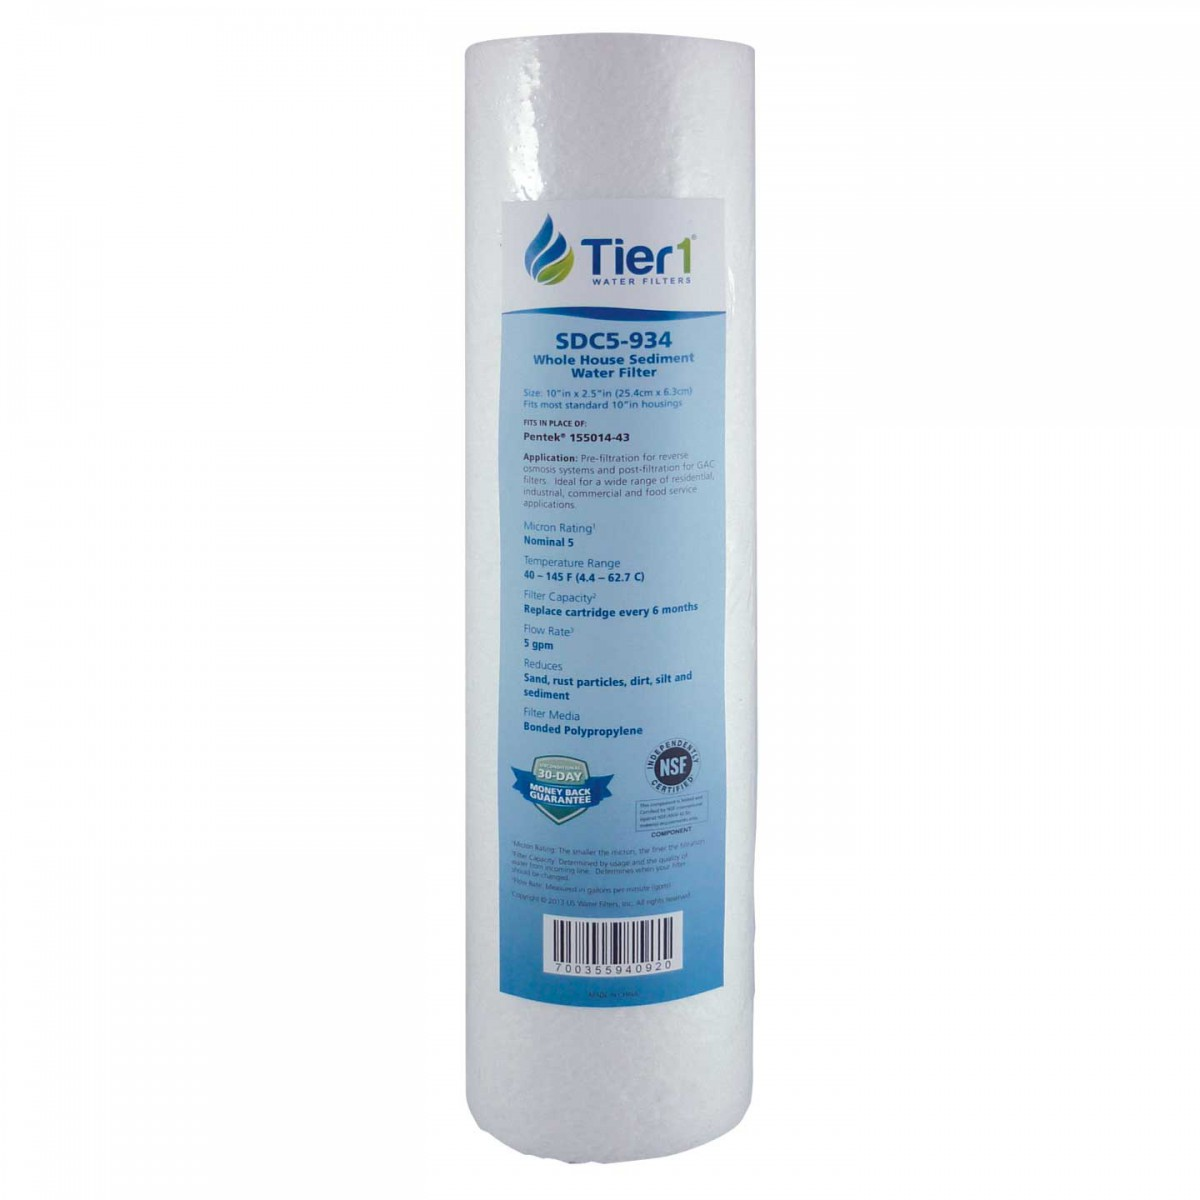 Pentek 155014 43 Comparable Whole House Sediment Water Filter by Tier1